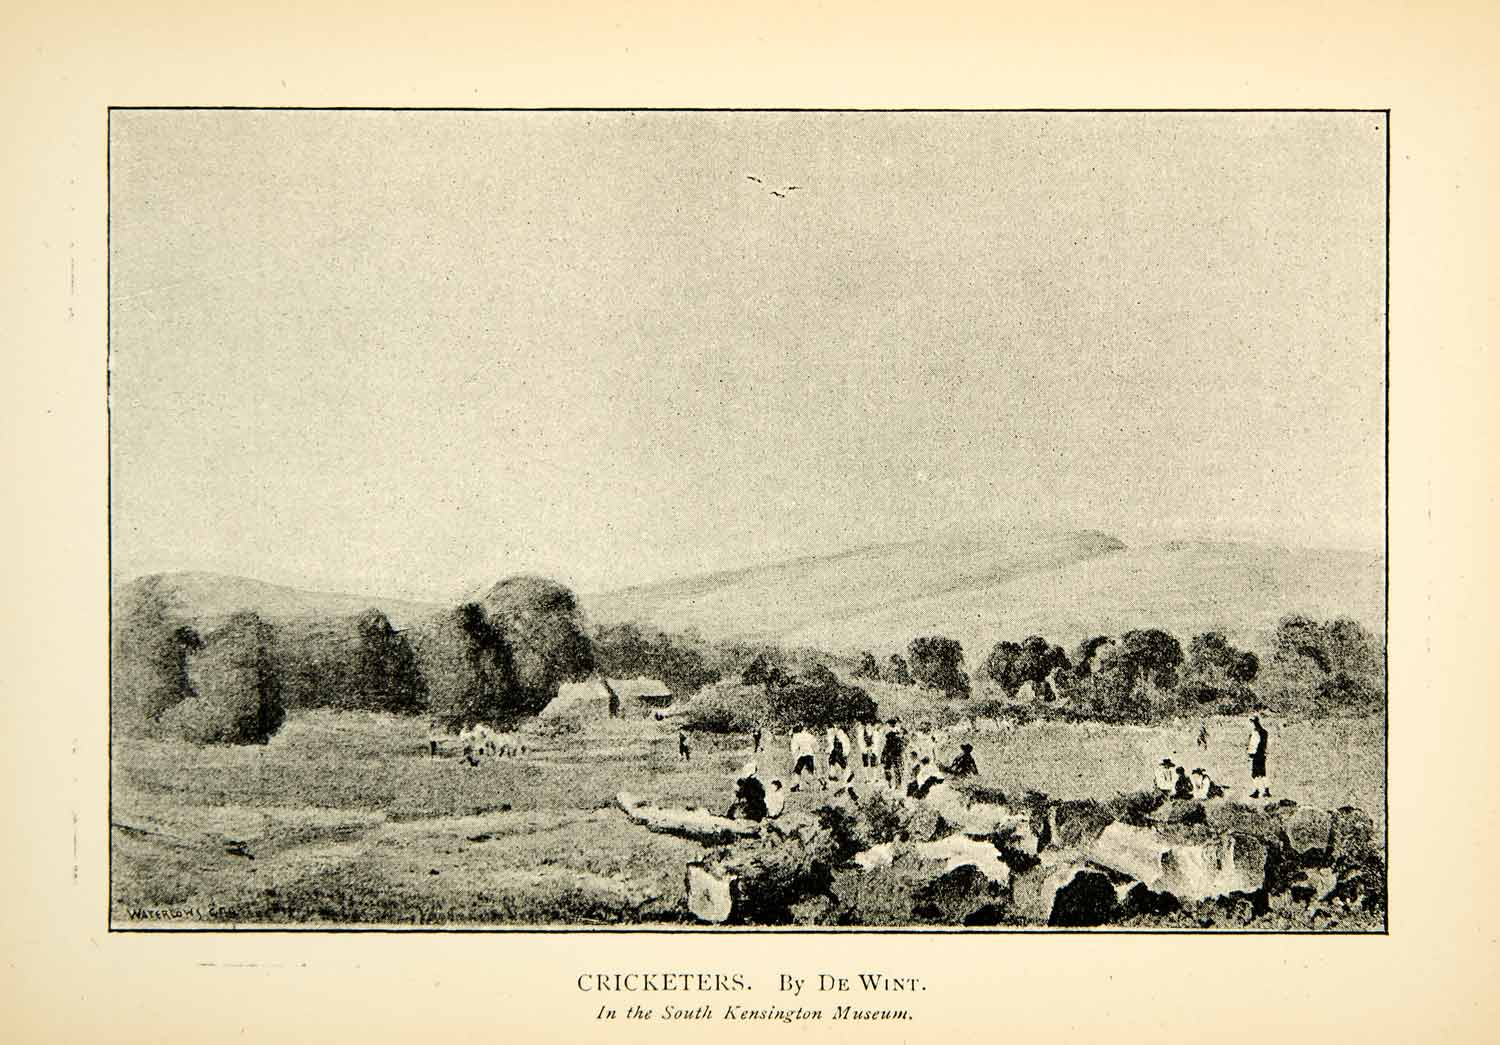 1891 Print Cricketers Peter De Wint English Countryside Landscape Sport XAGA4